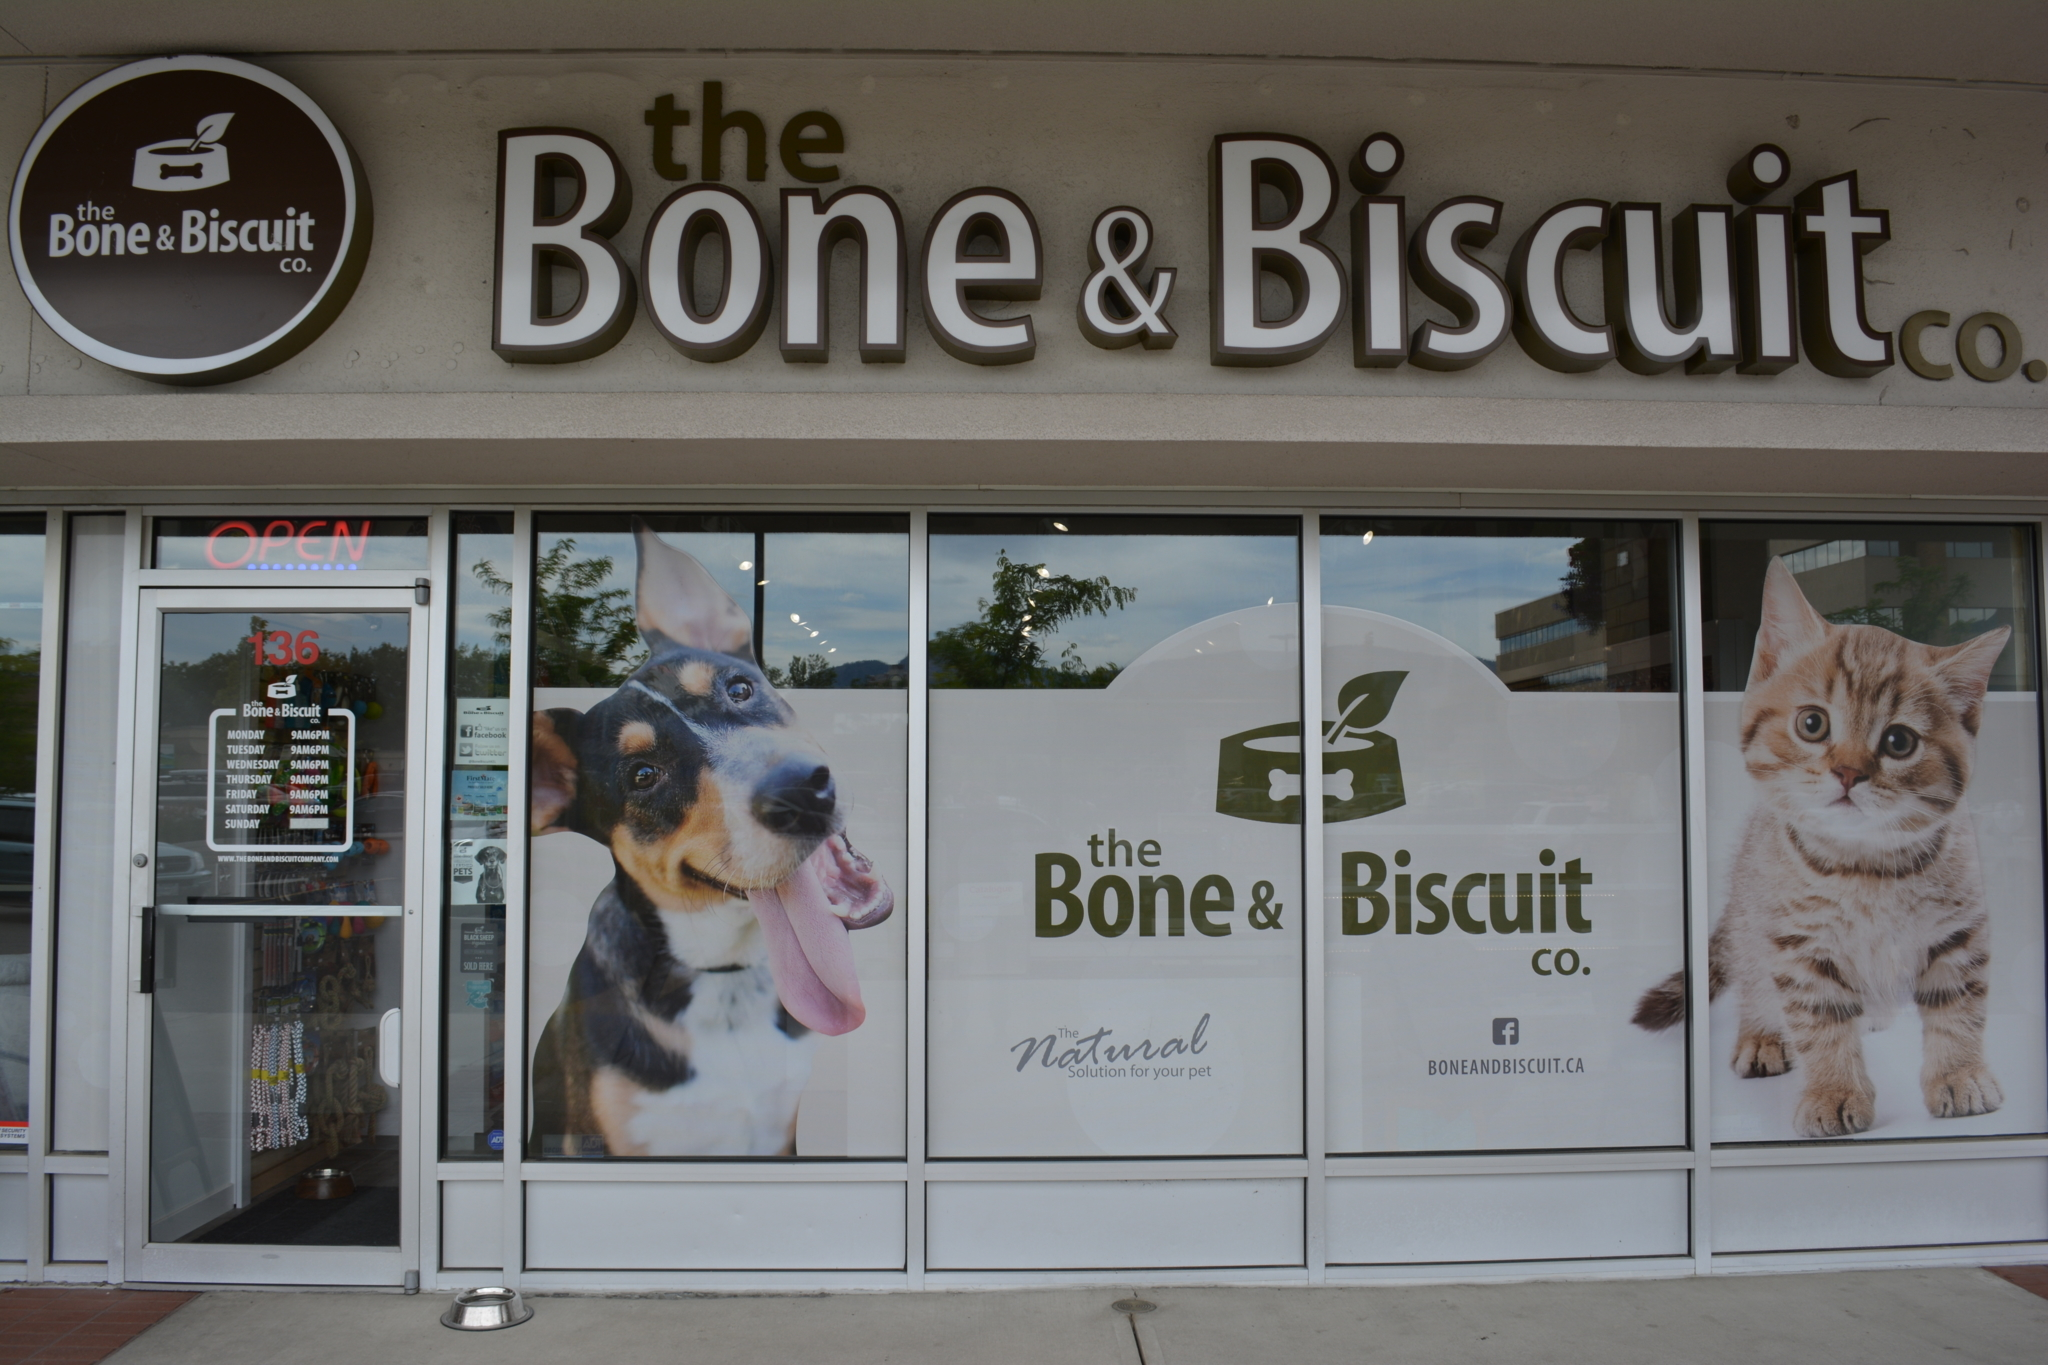 Images the Bone & Biscuit co.